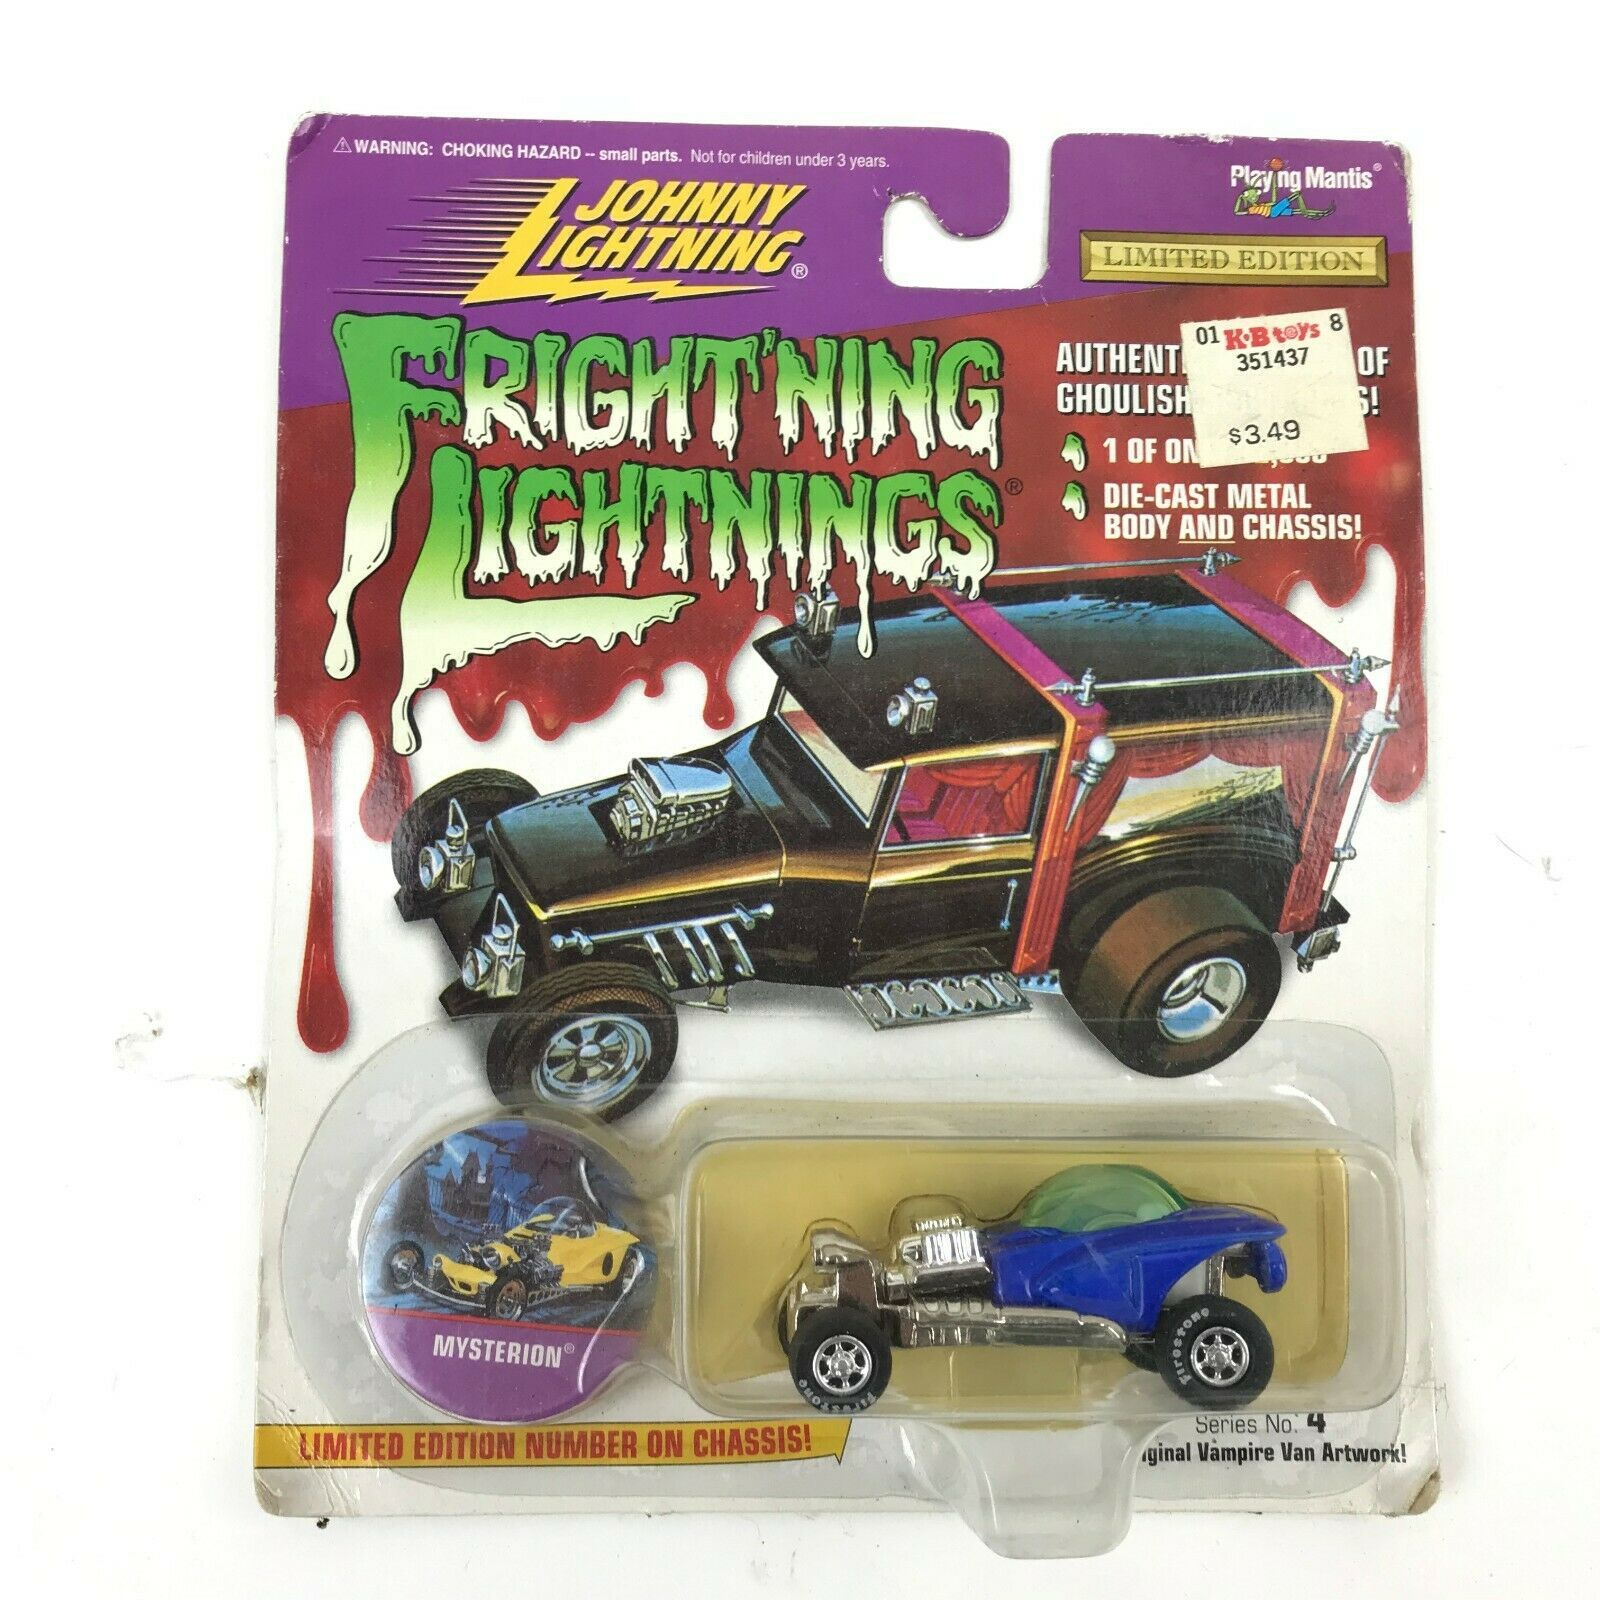 Primary image for Vtg 90s Johnny Lightning Frightning Lightnings MYSTERION Limited Die Cast- Blue